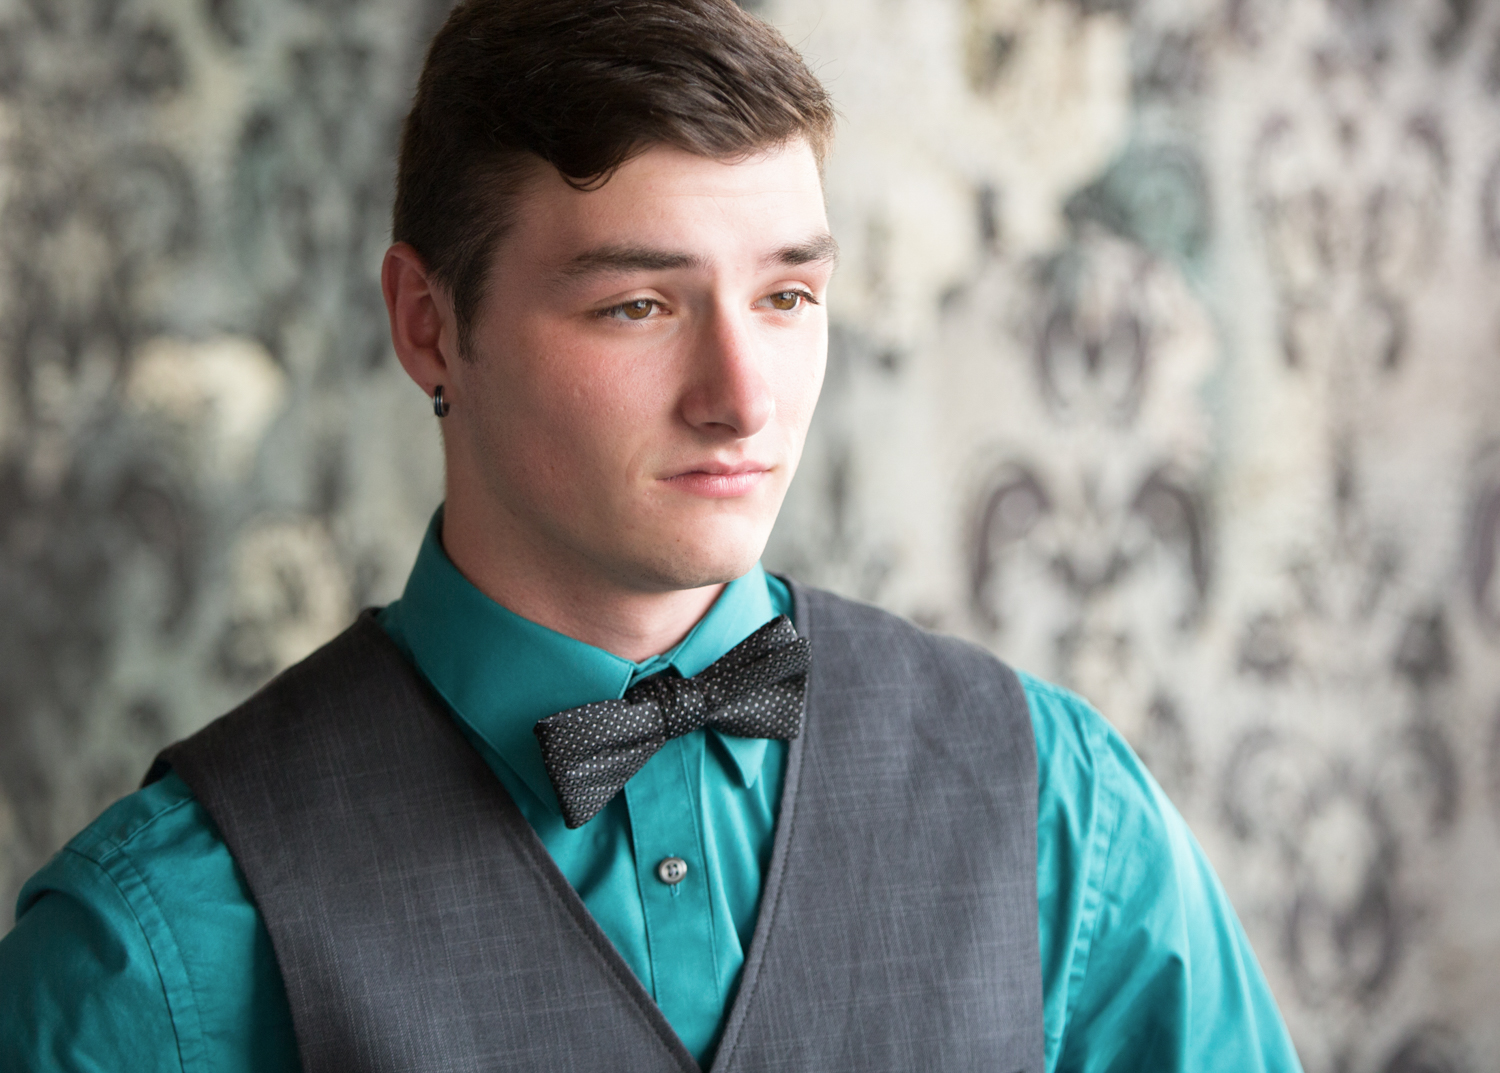 Portrait-HIgh-School-Seniors-boy-young-man-with-bow-tie-looking-concerned-203.jpg